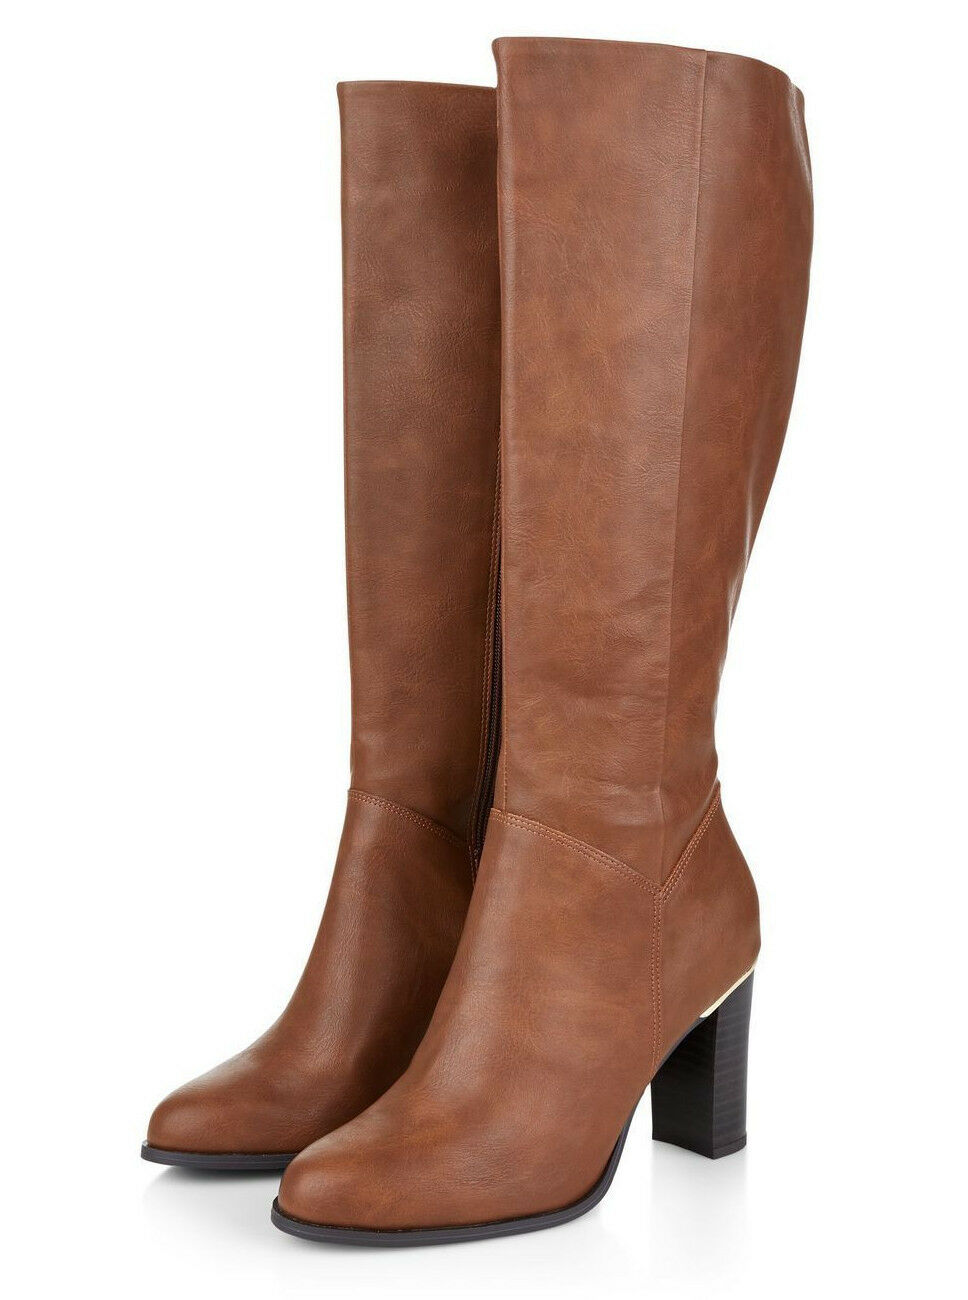 NEW LOOK Größe 5 6 7 8 TAN STONE FAUX LEATHER HIGH SLIM HEEL KNEE HIGH Stiefel NEW